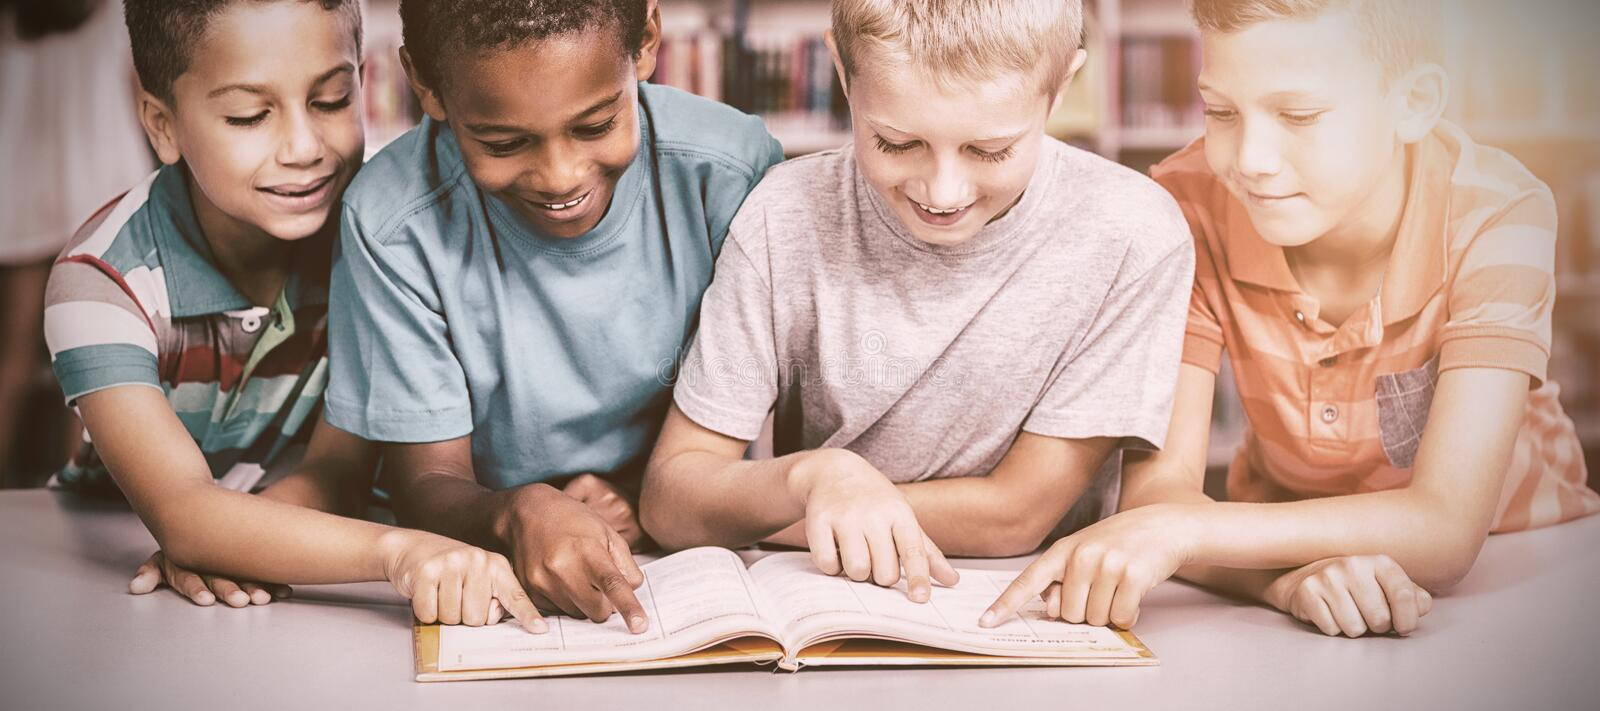 School kids reading book together in library stock image